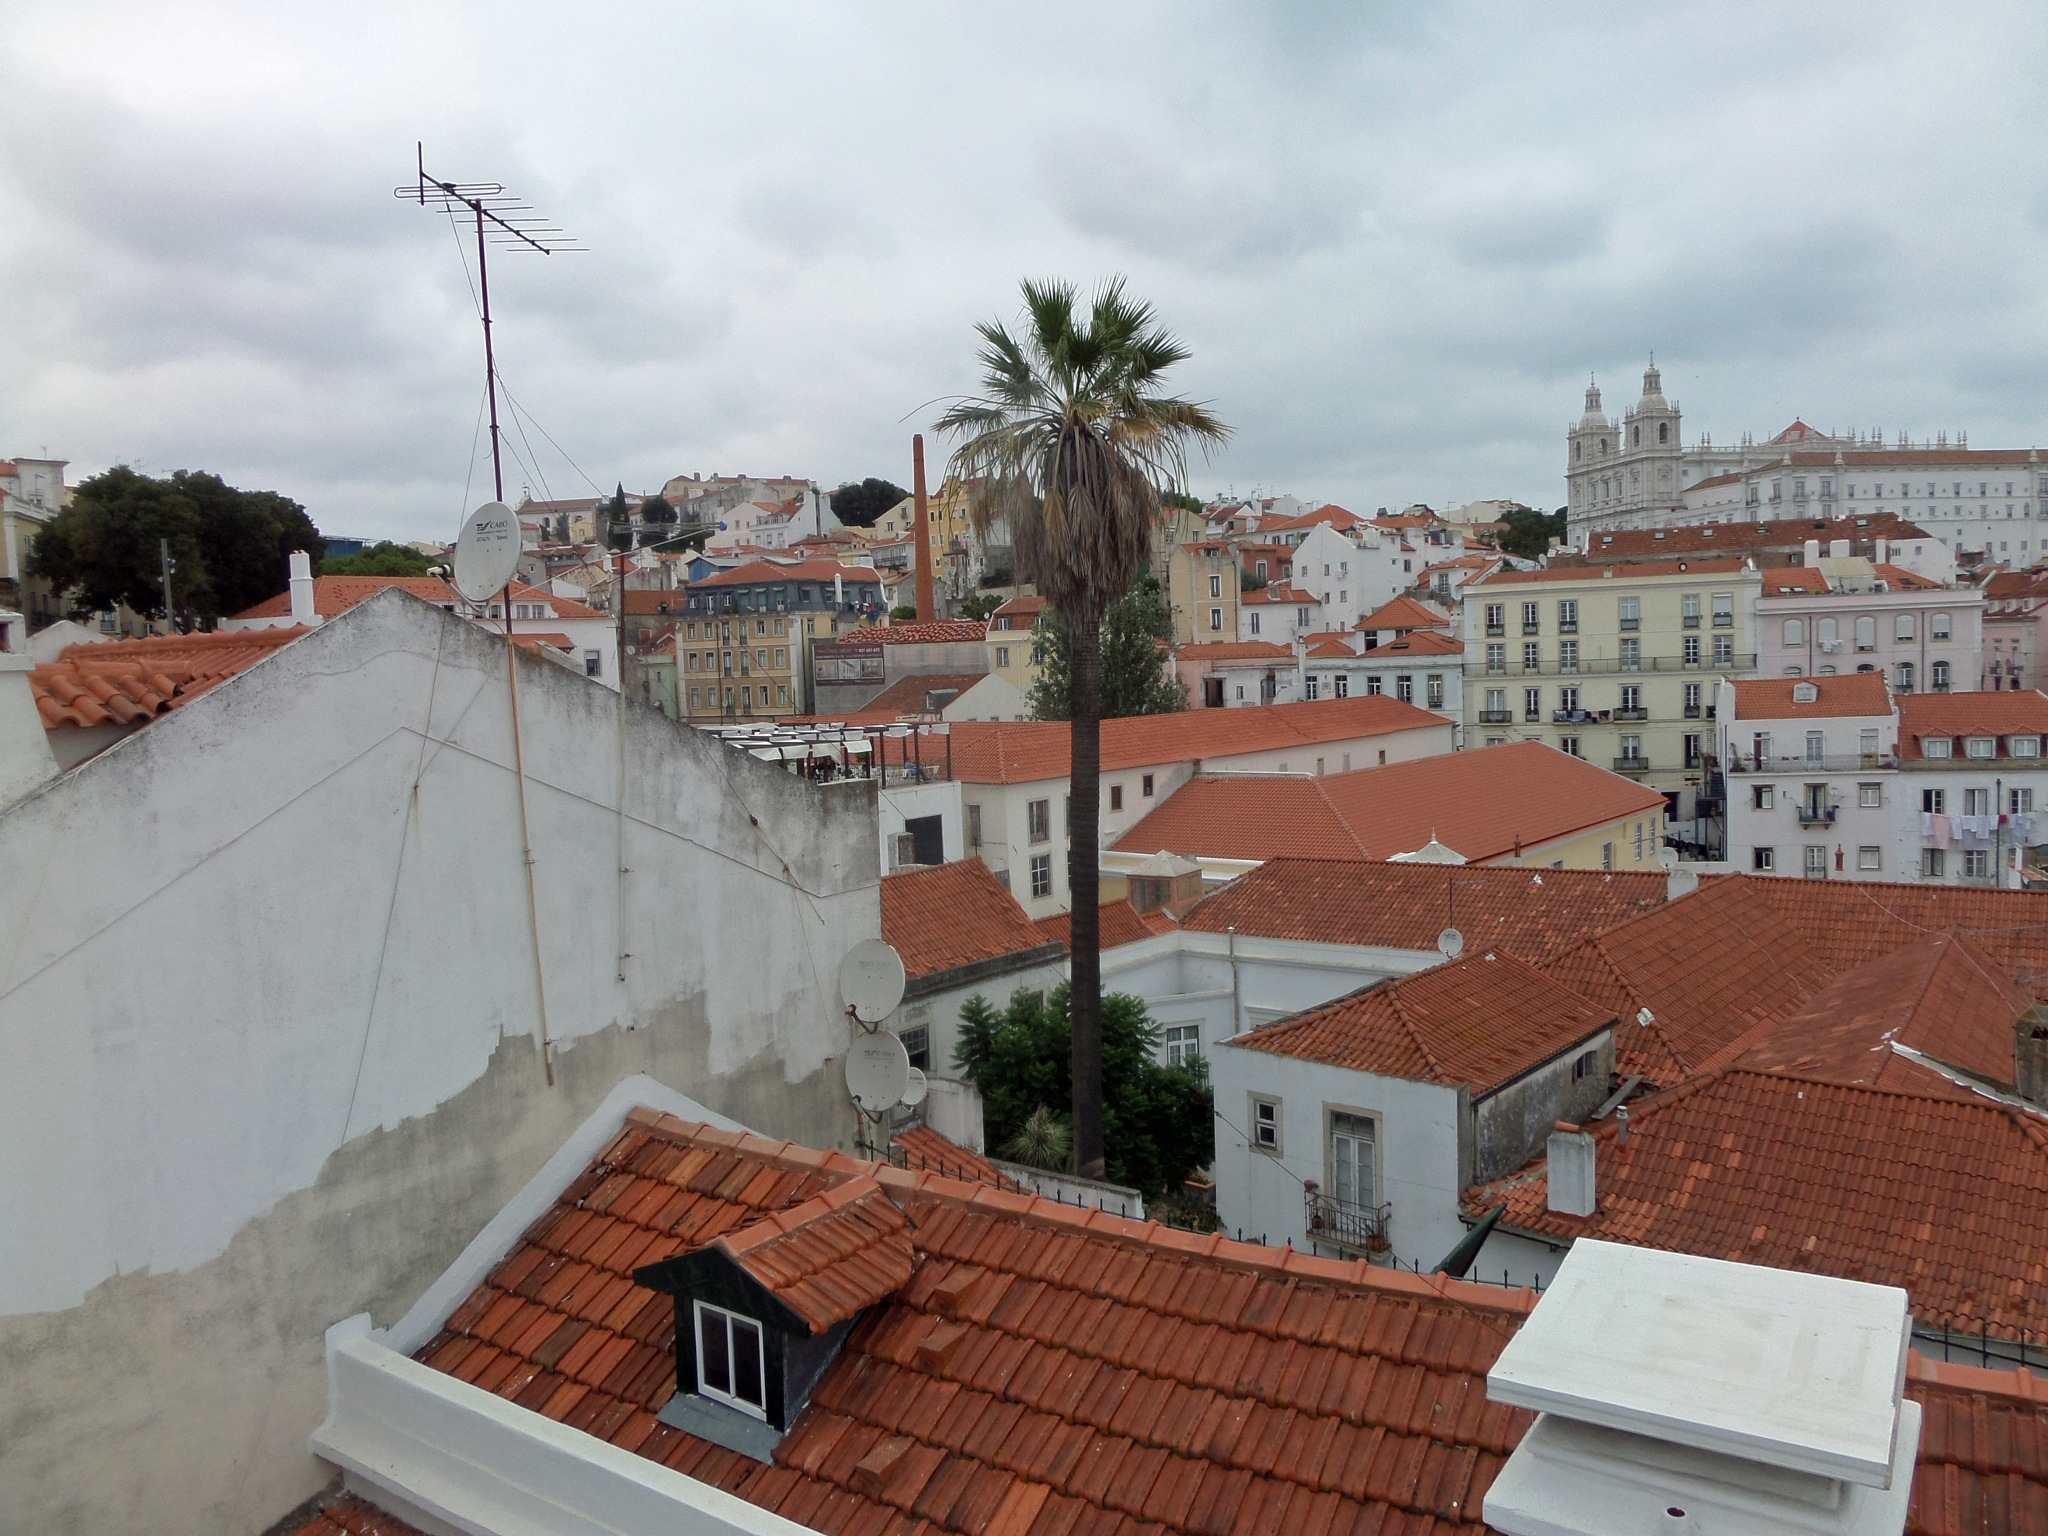 Red Roofs under Cloud  by shotters